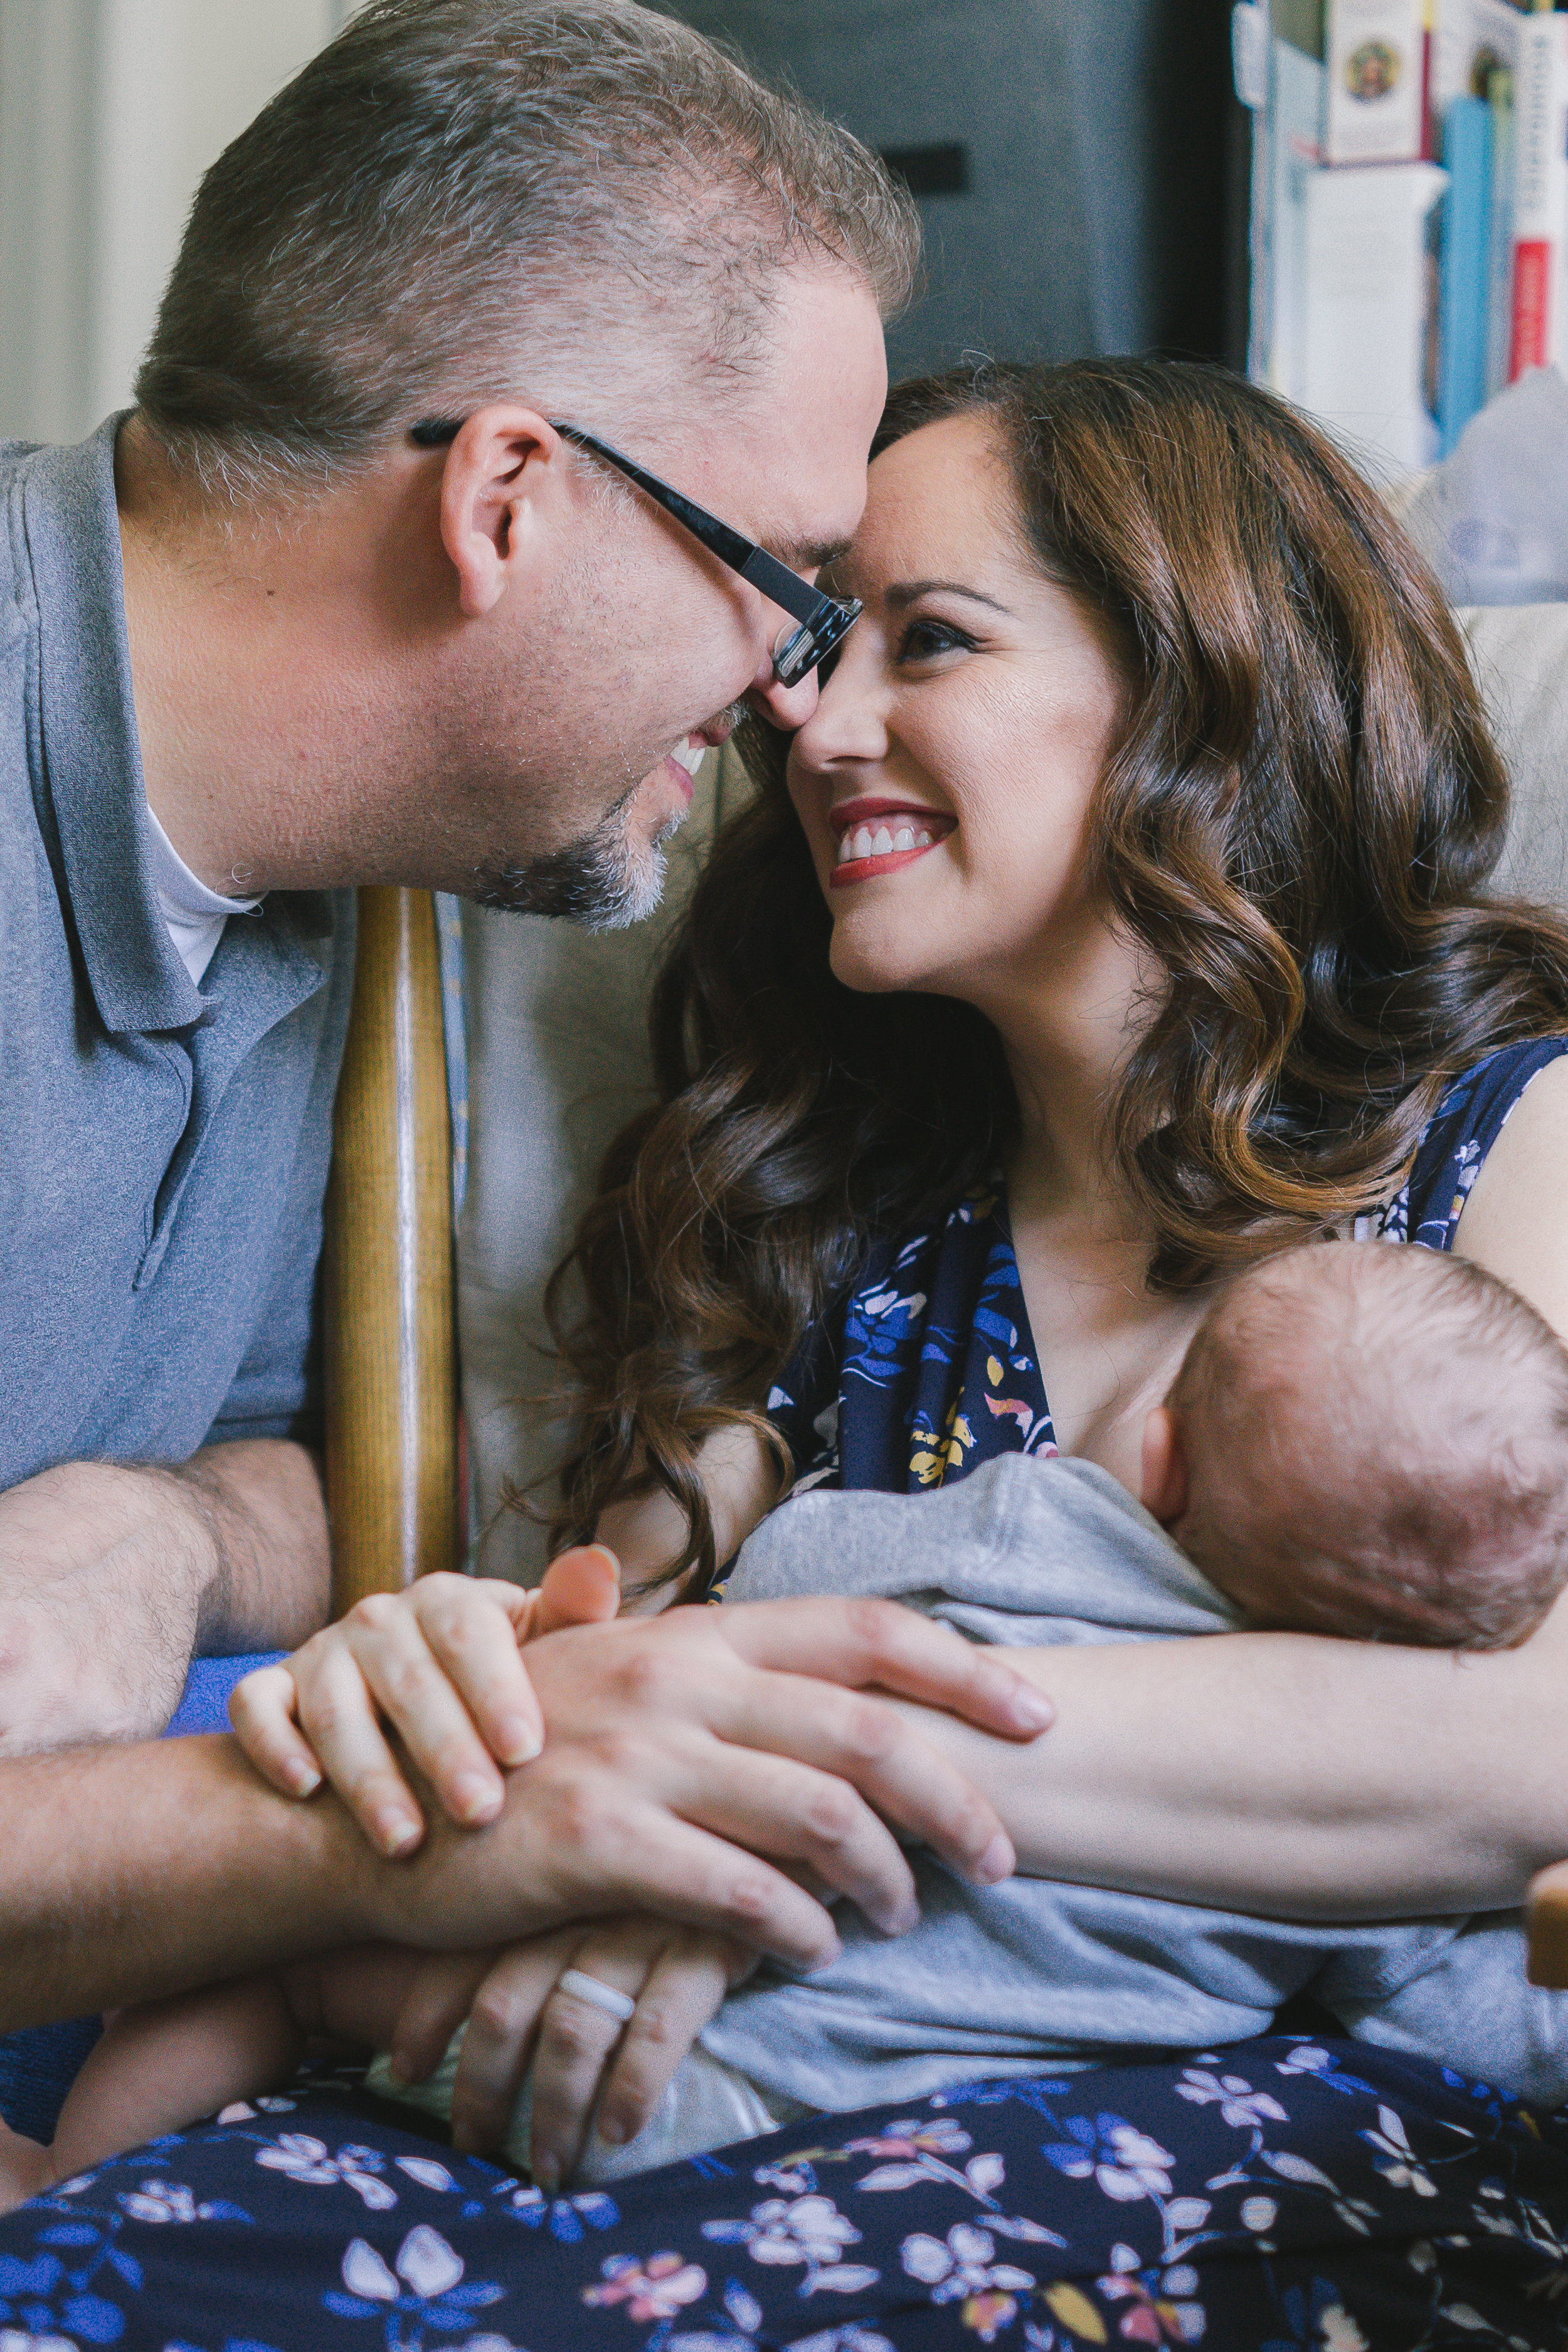 Tampa baby session, Tampa new born photographer, Tampa lifestyle session